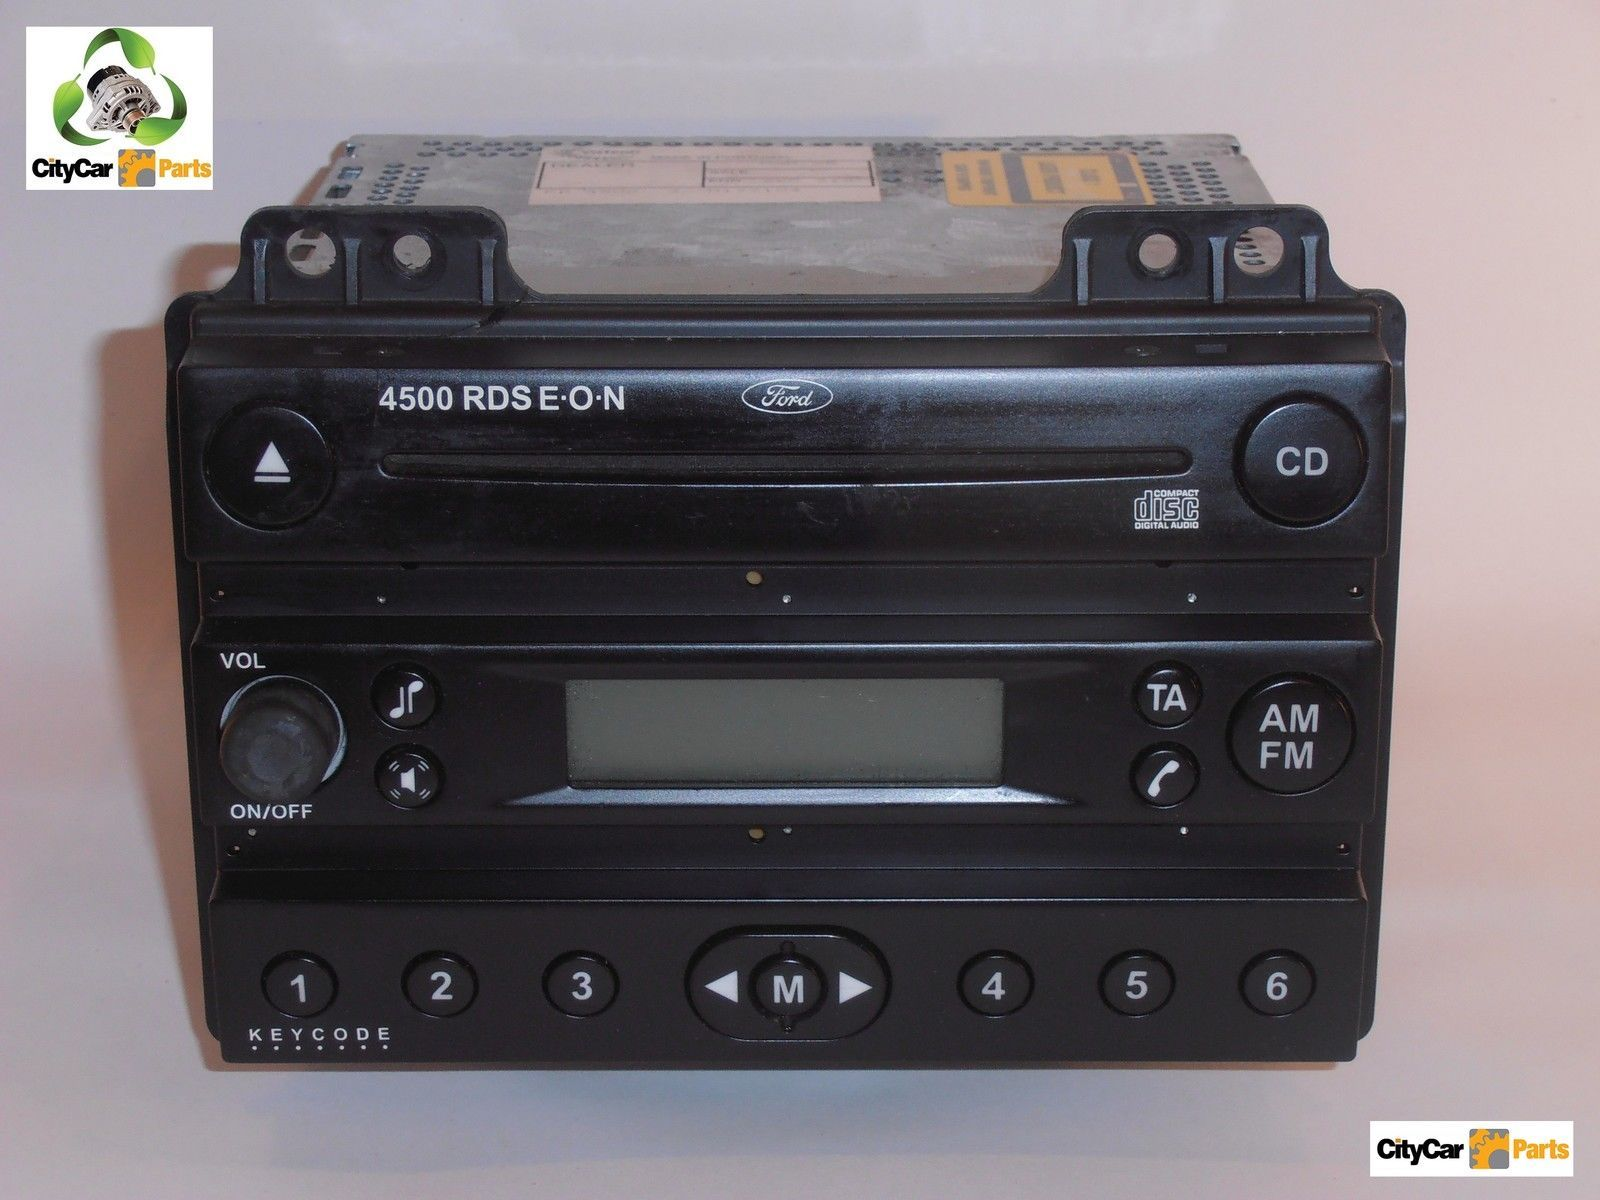 ford fiesta fusion 4500rds e o n single cd player radio. Black Bedroom Furniture Sets. Home Design Ideas